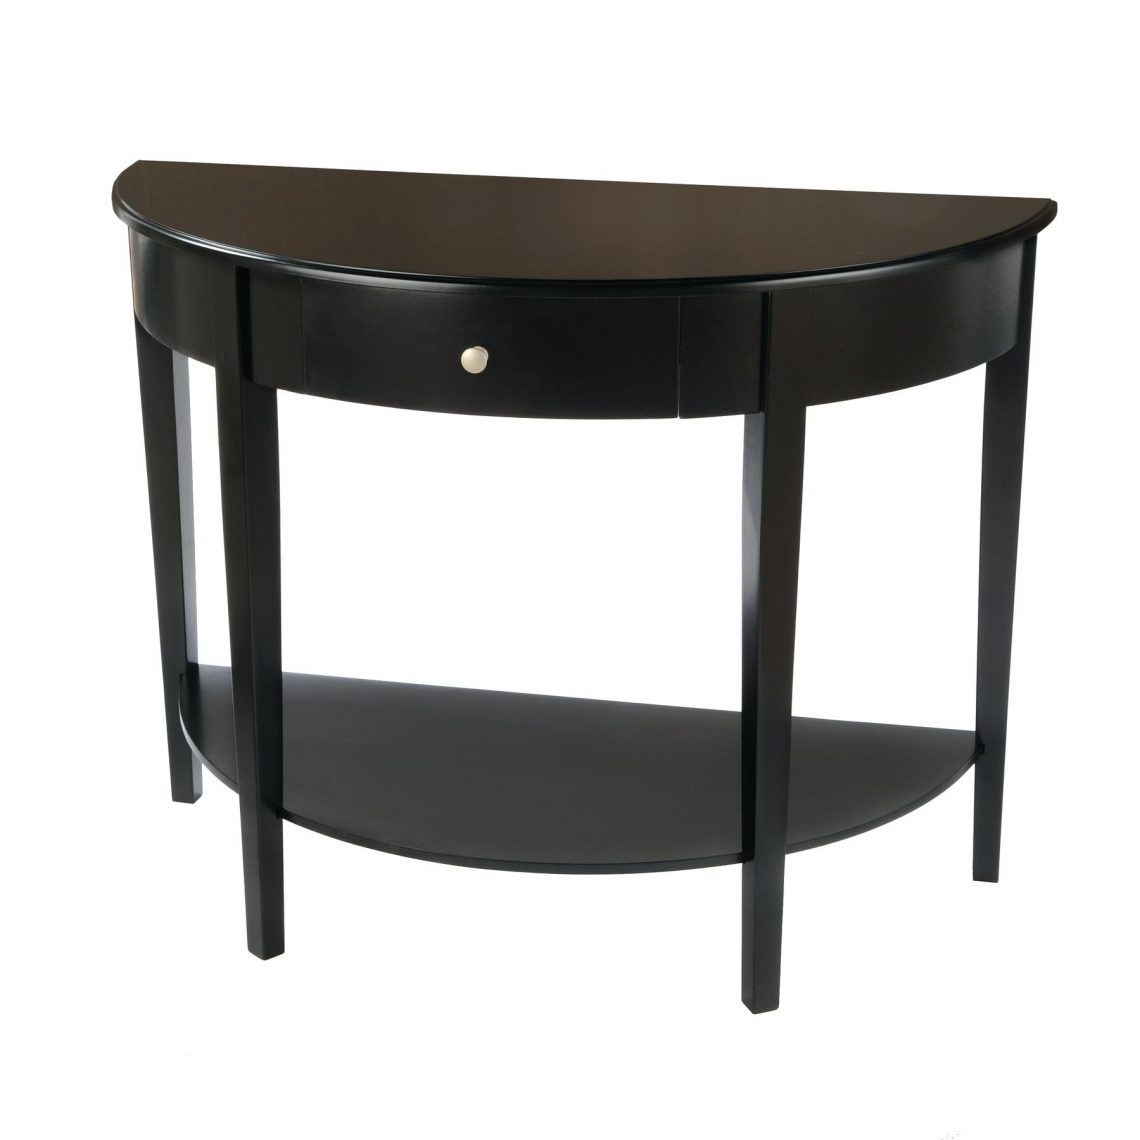 round mirrored side table glass mirror small black nightstand single drawer shelf bedroom furniture ideas drawers metal bedside accent tables unique nig vinofestdc end with top